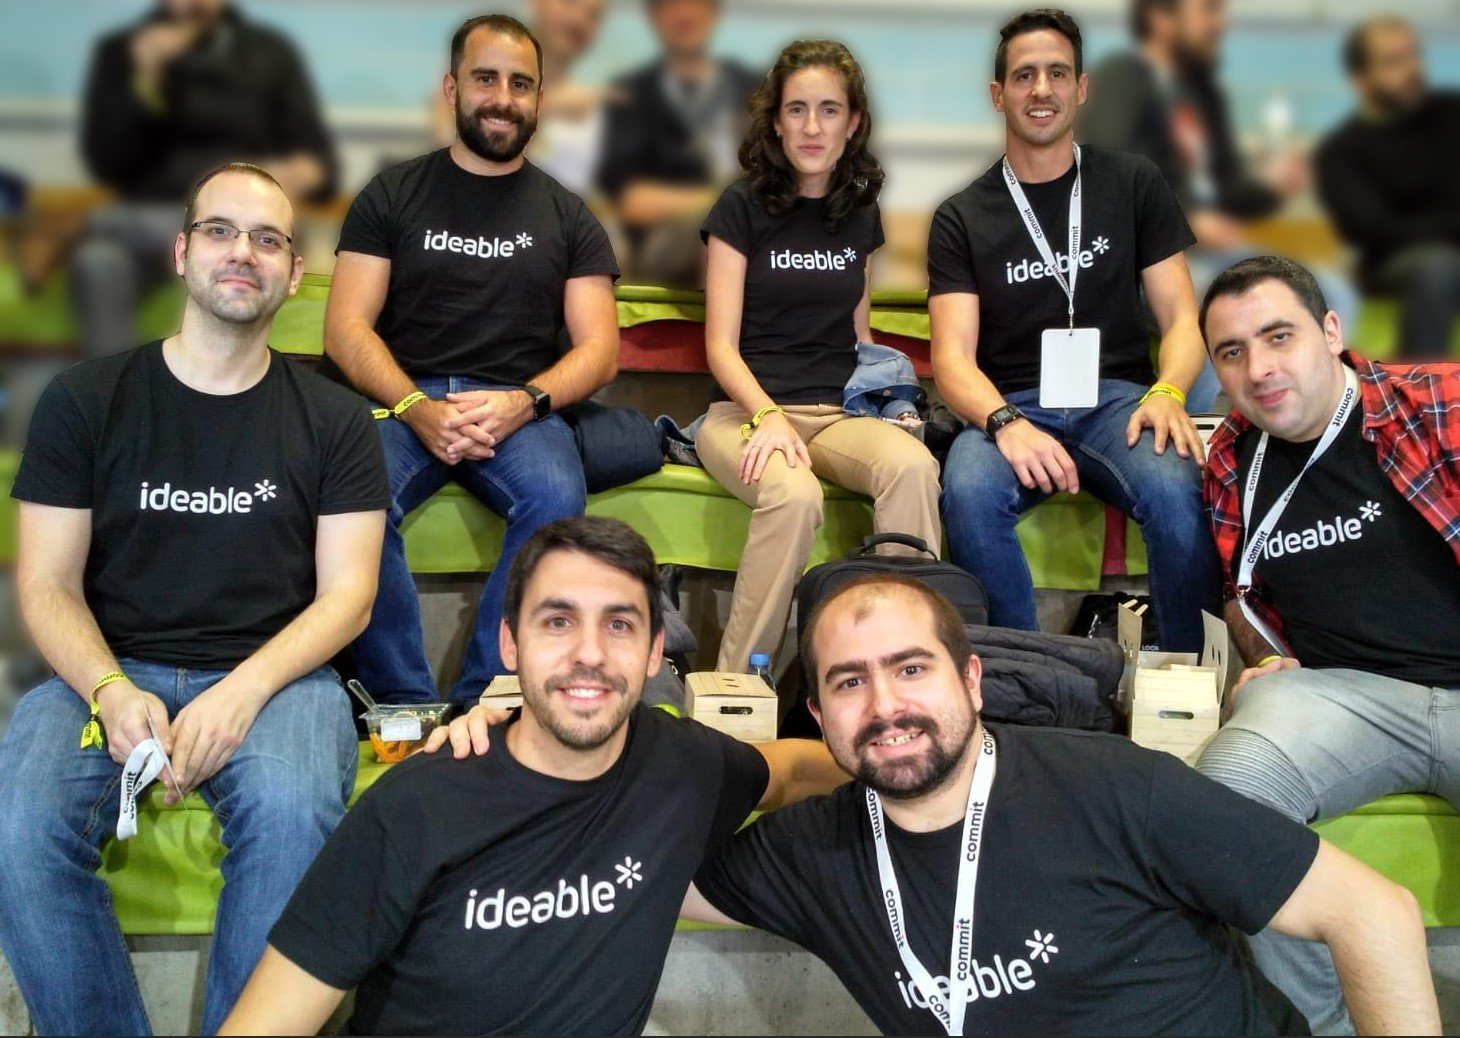 commit conf ideable